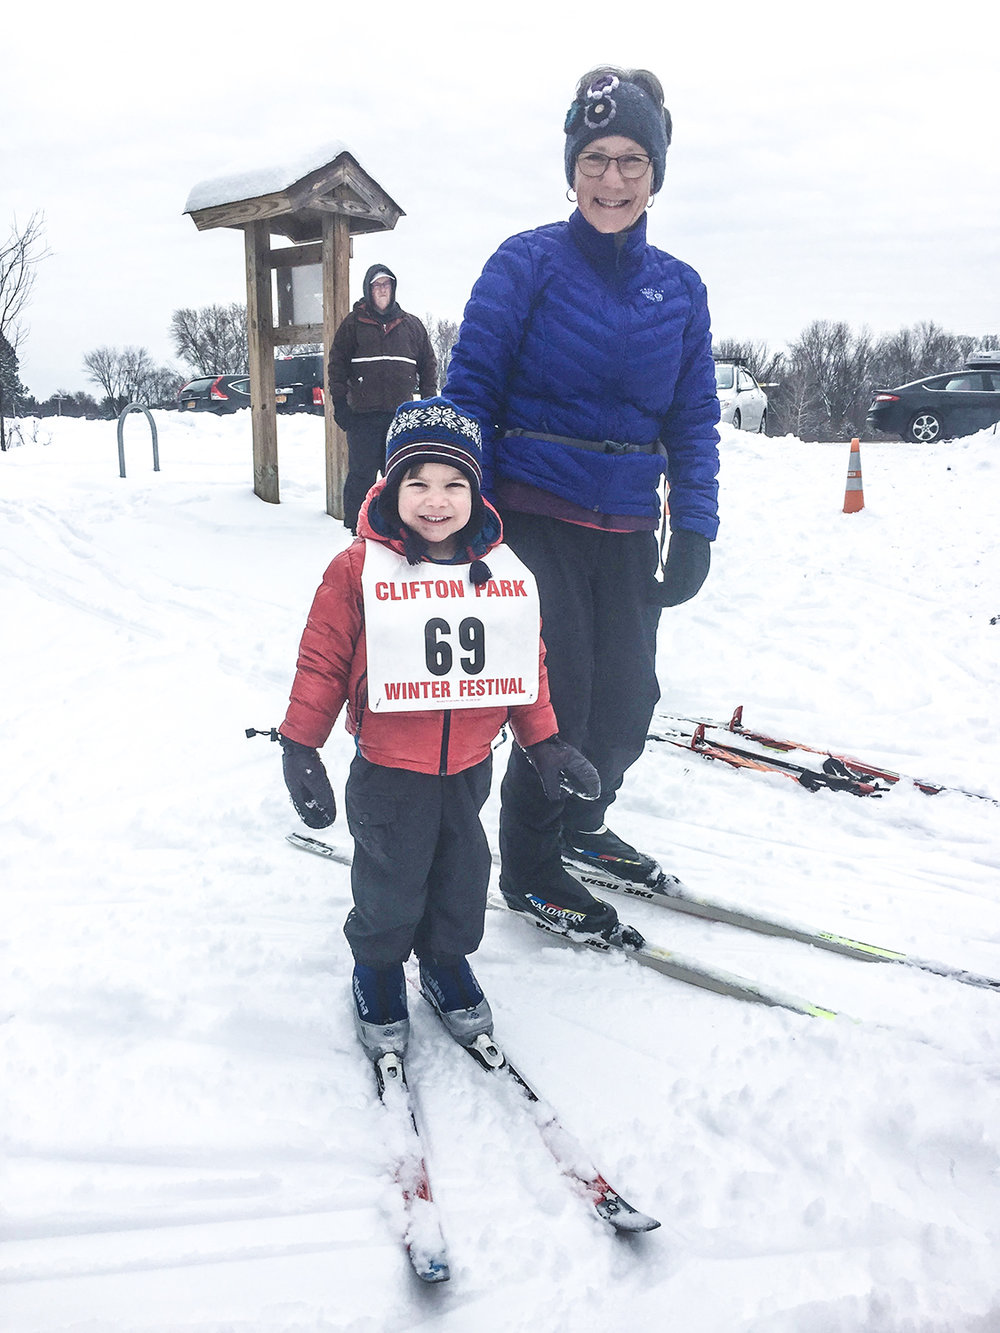 Family skiing at Garnsey Park in Clifton Park, 2017.   Darryl Caron